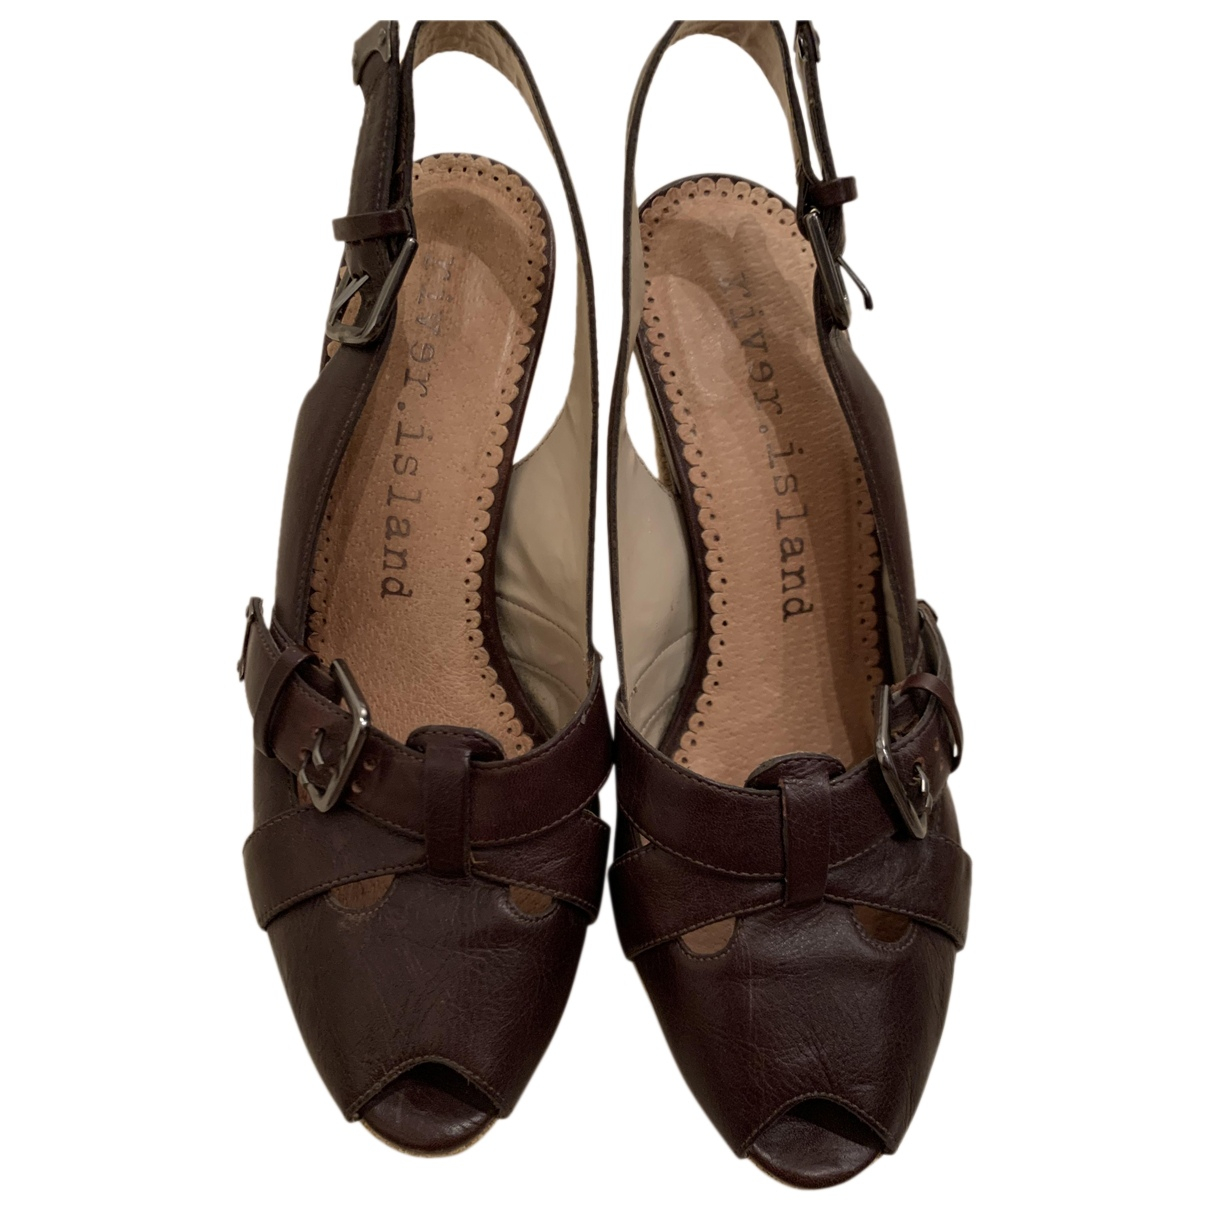 River Island N Brown Leather Heels for Women 38 EU